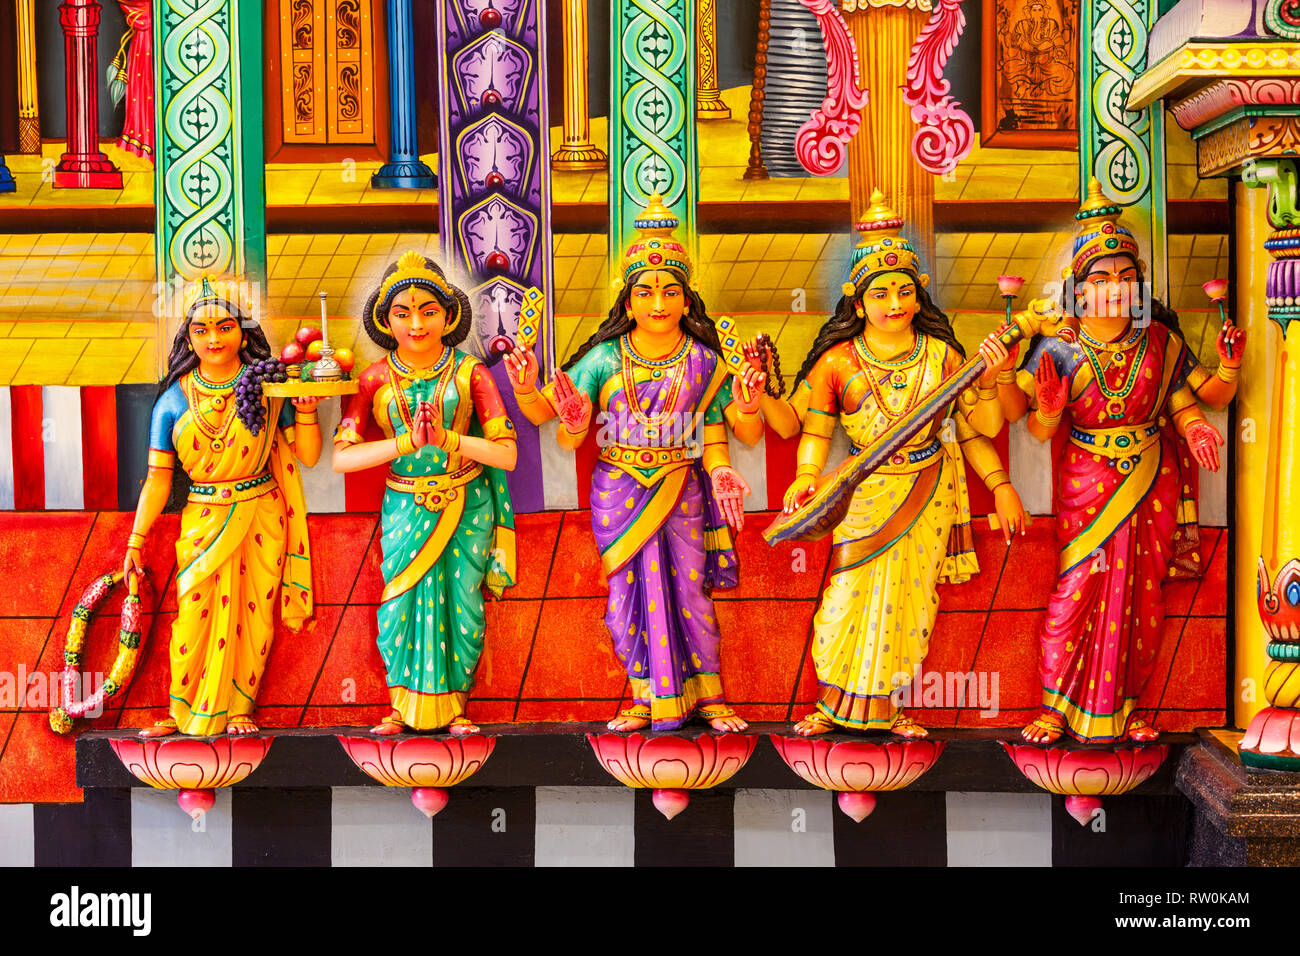 Batu Caves, Hindu Deities Line Wall of Temple at Base of Steps leading to Caves, Selangor, Malaysia. - Stock Image